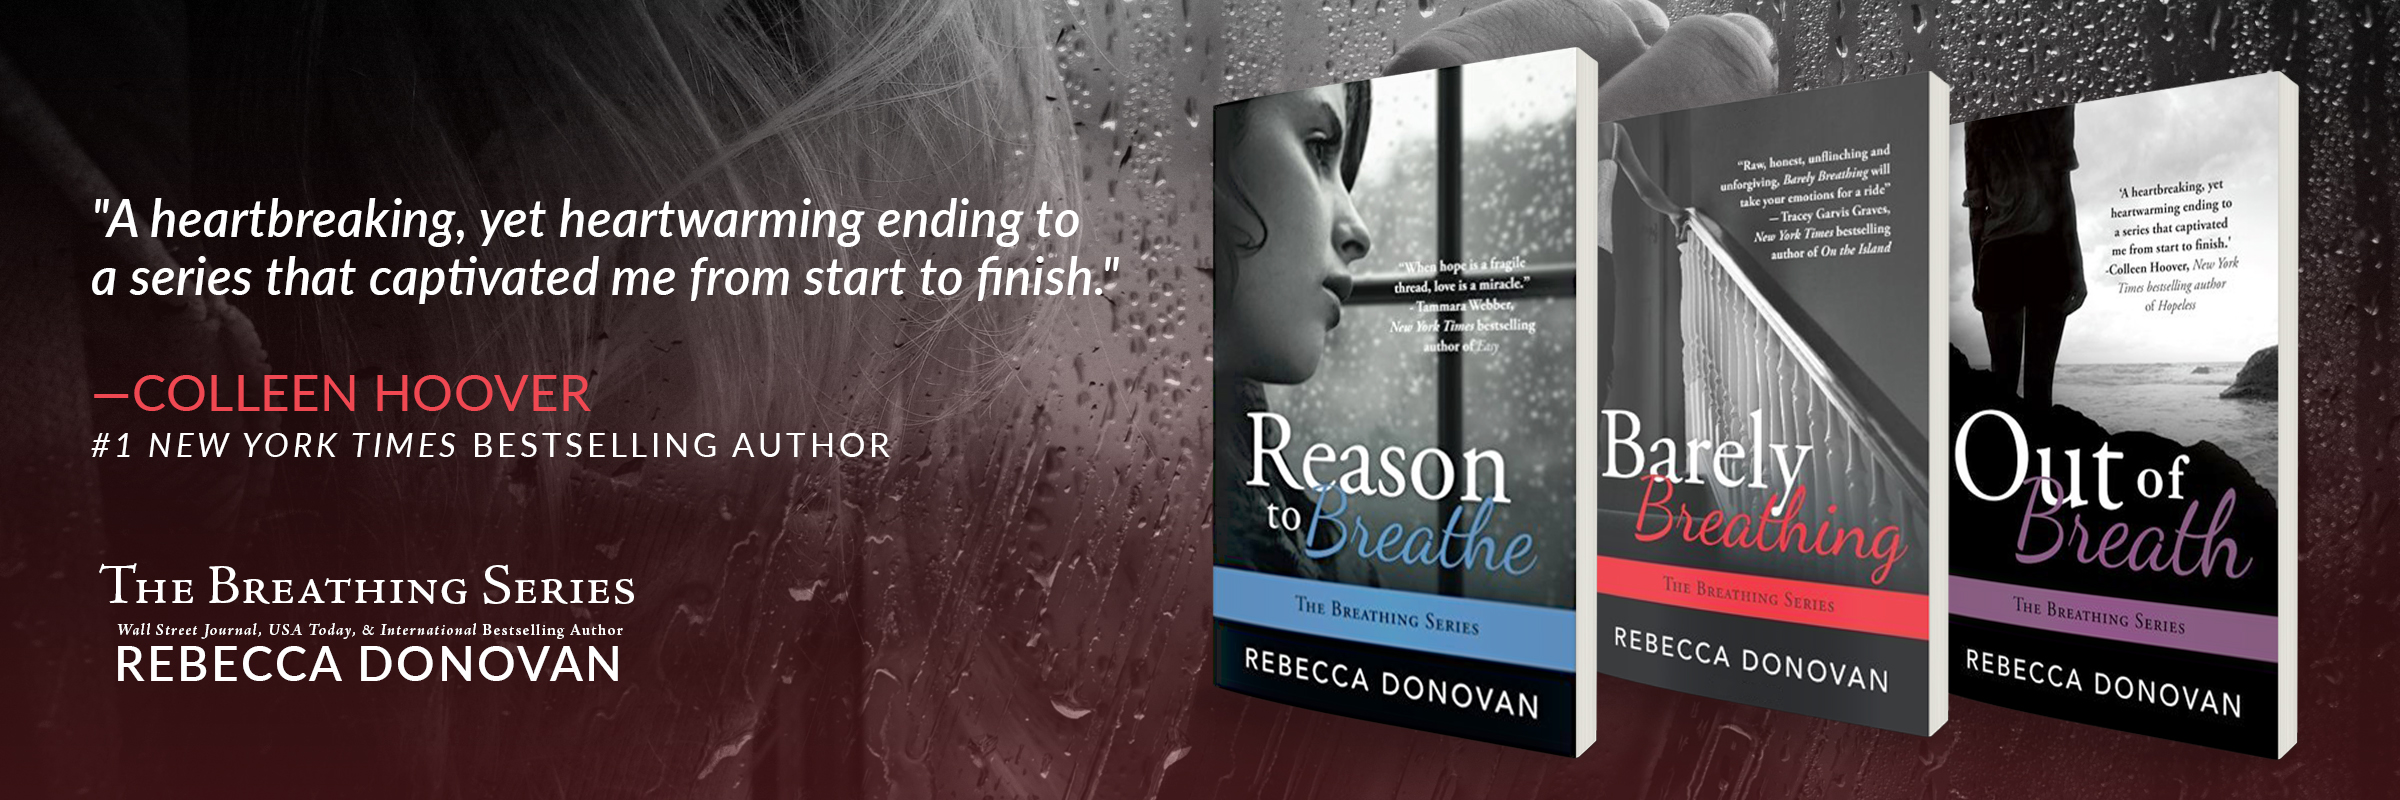 The Breathing Series by Rebecca Donovan